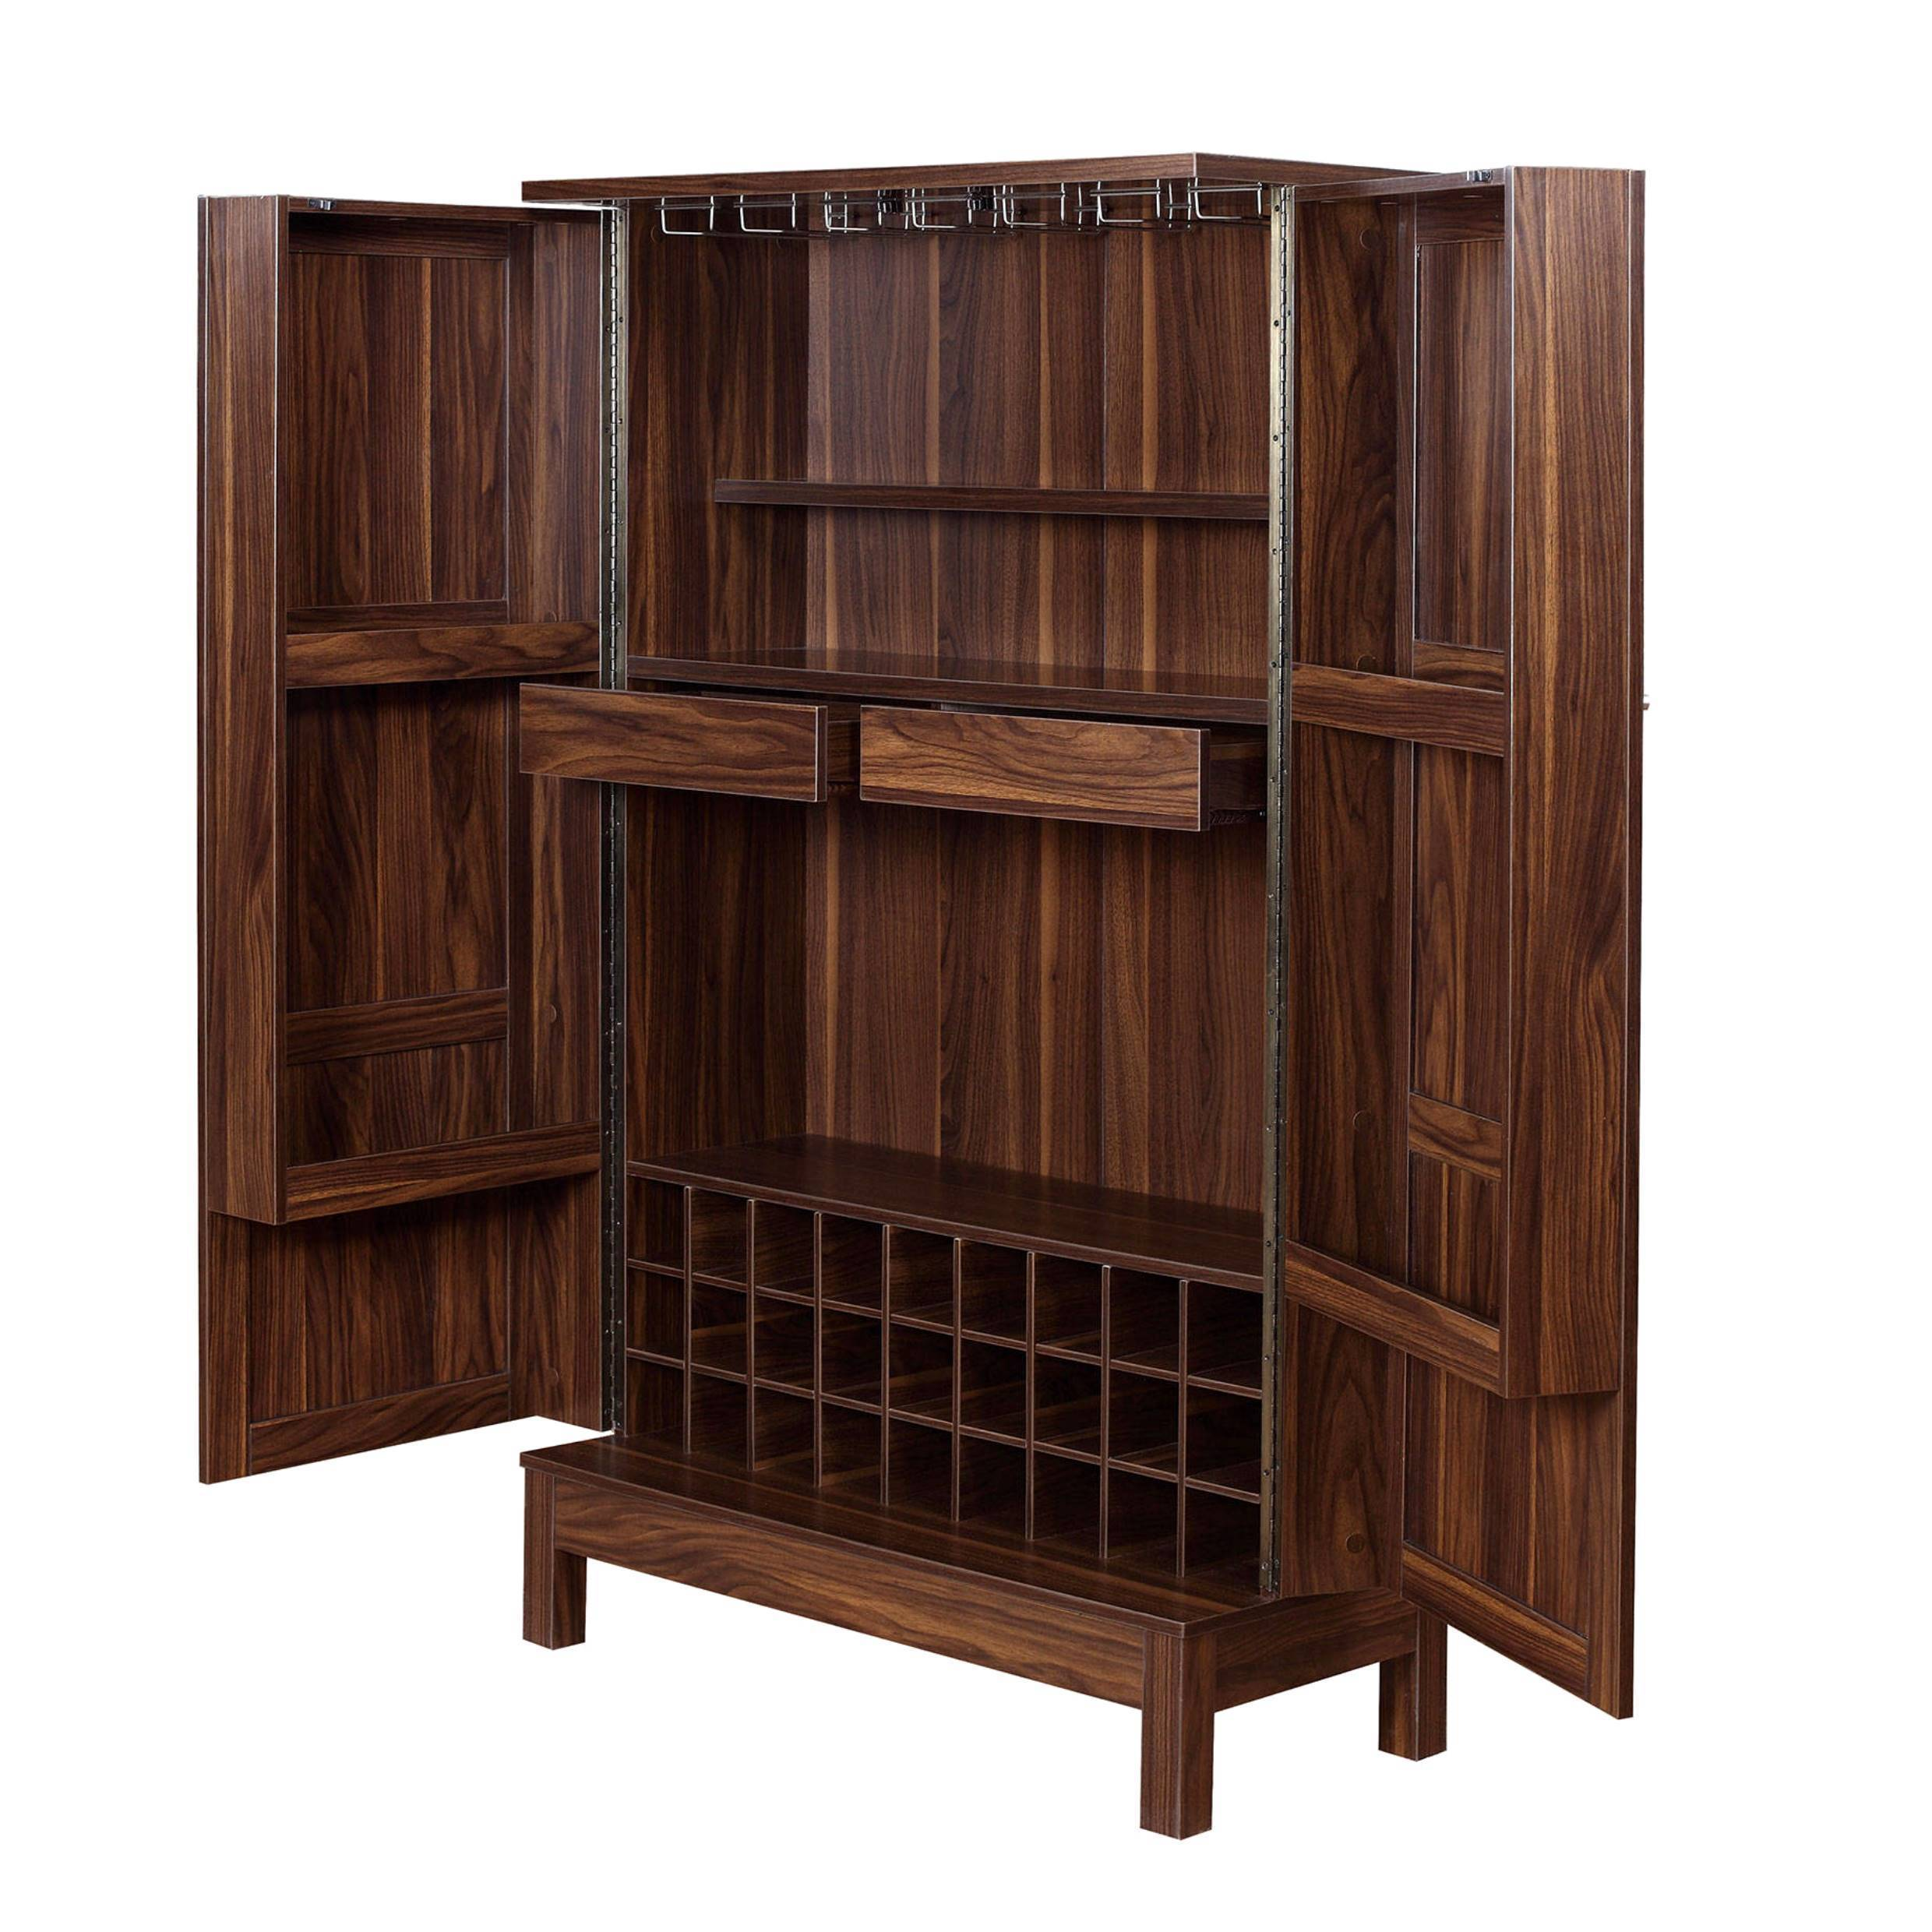 Exceptionnel Wine Storage Bar Armoire Cabinet   Free Shipping Today   Overstock.com    22643812